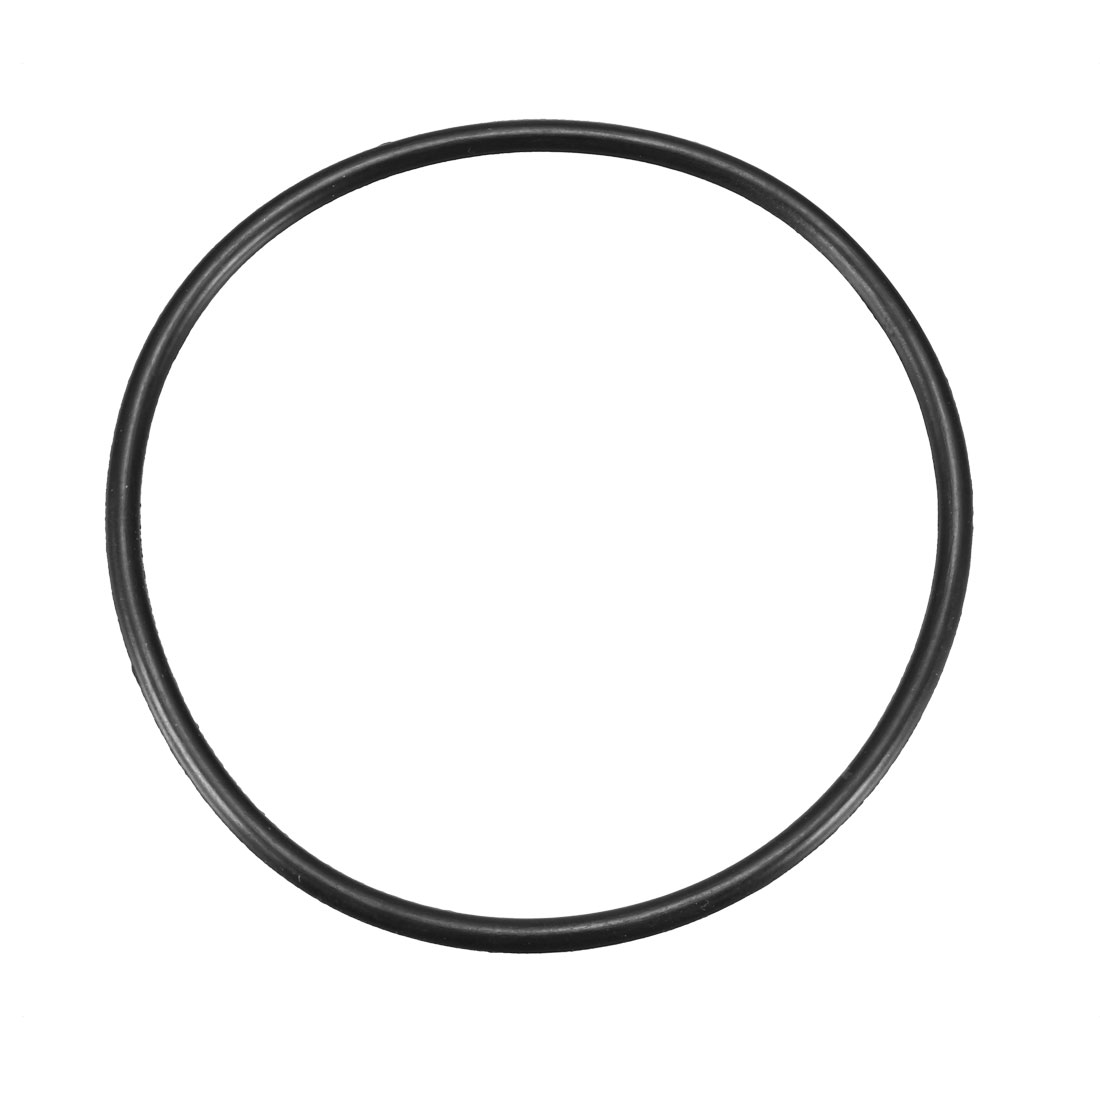 20 Pcs Black Rubber 80mm x 74mm Oil Seal O Rings Gaskets Washers